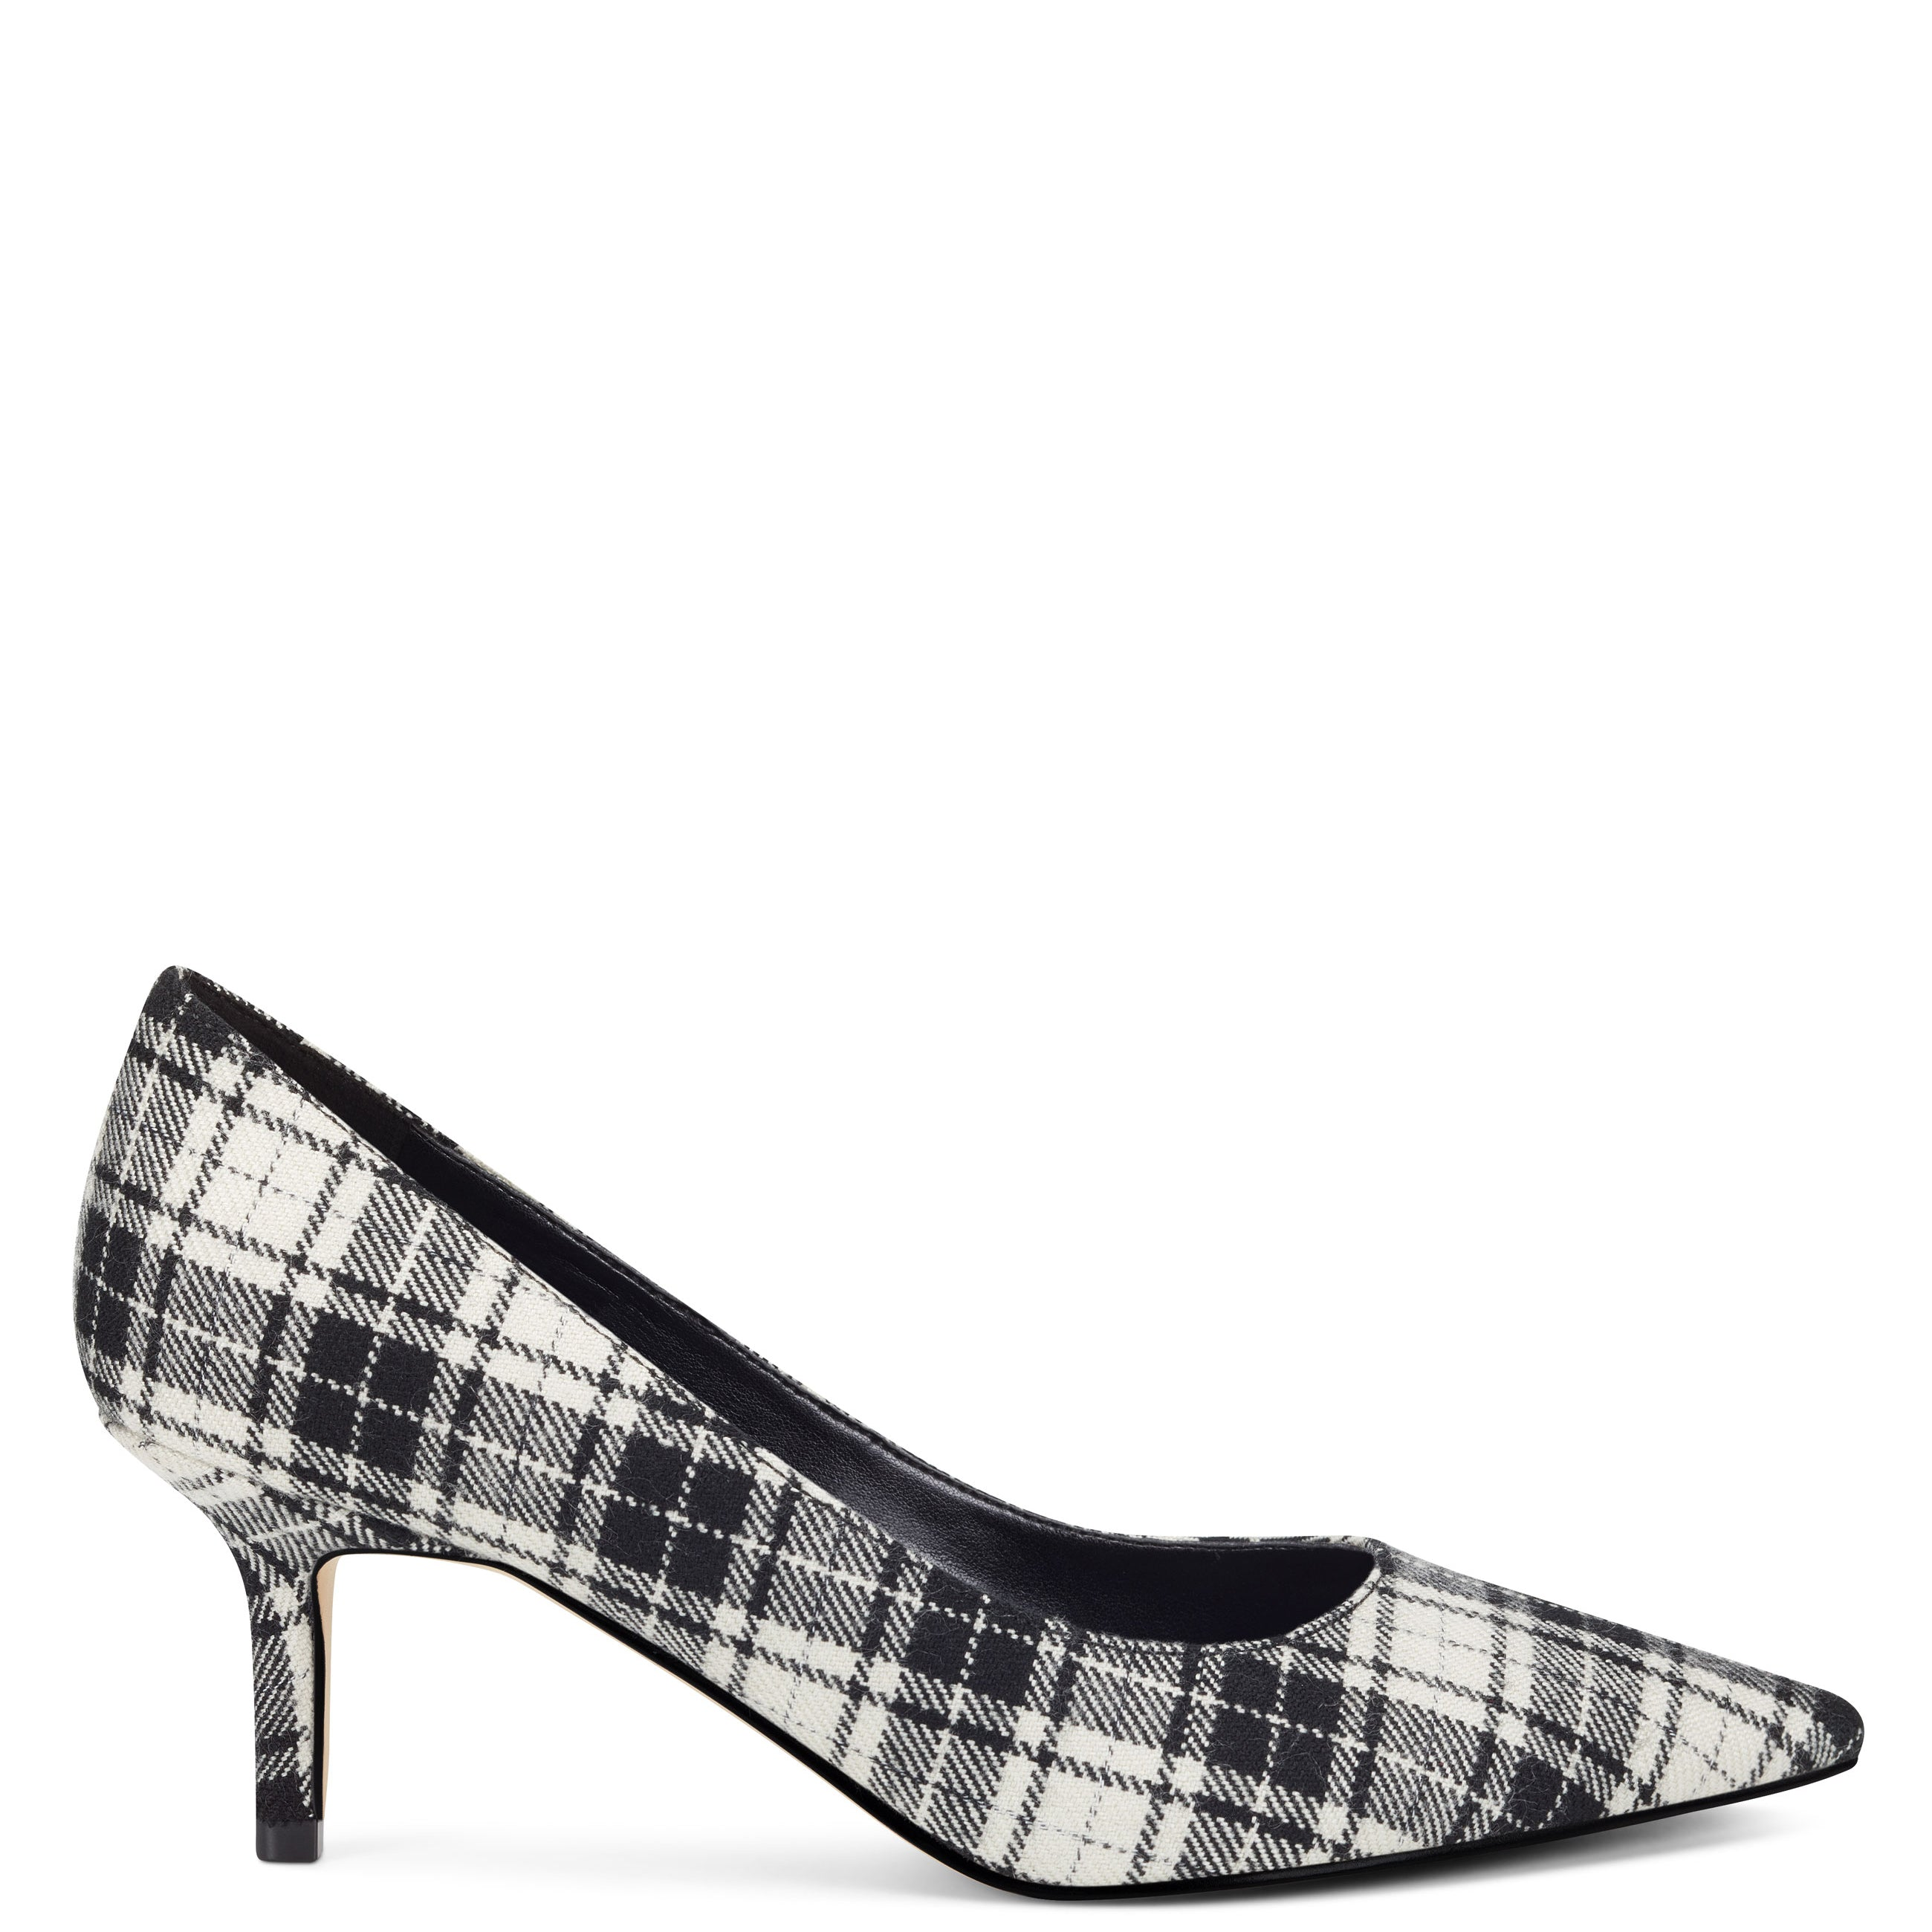 NINEWEST Arlene Pointy Toe Pumps